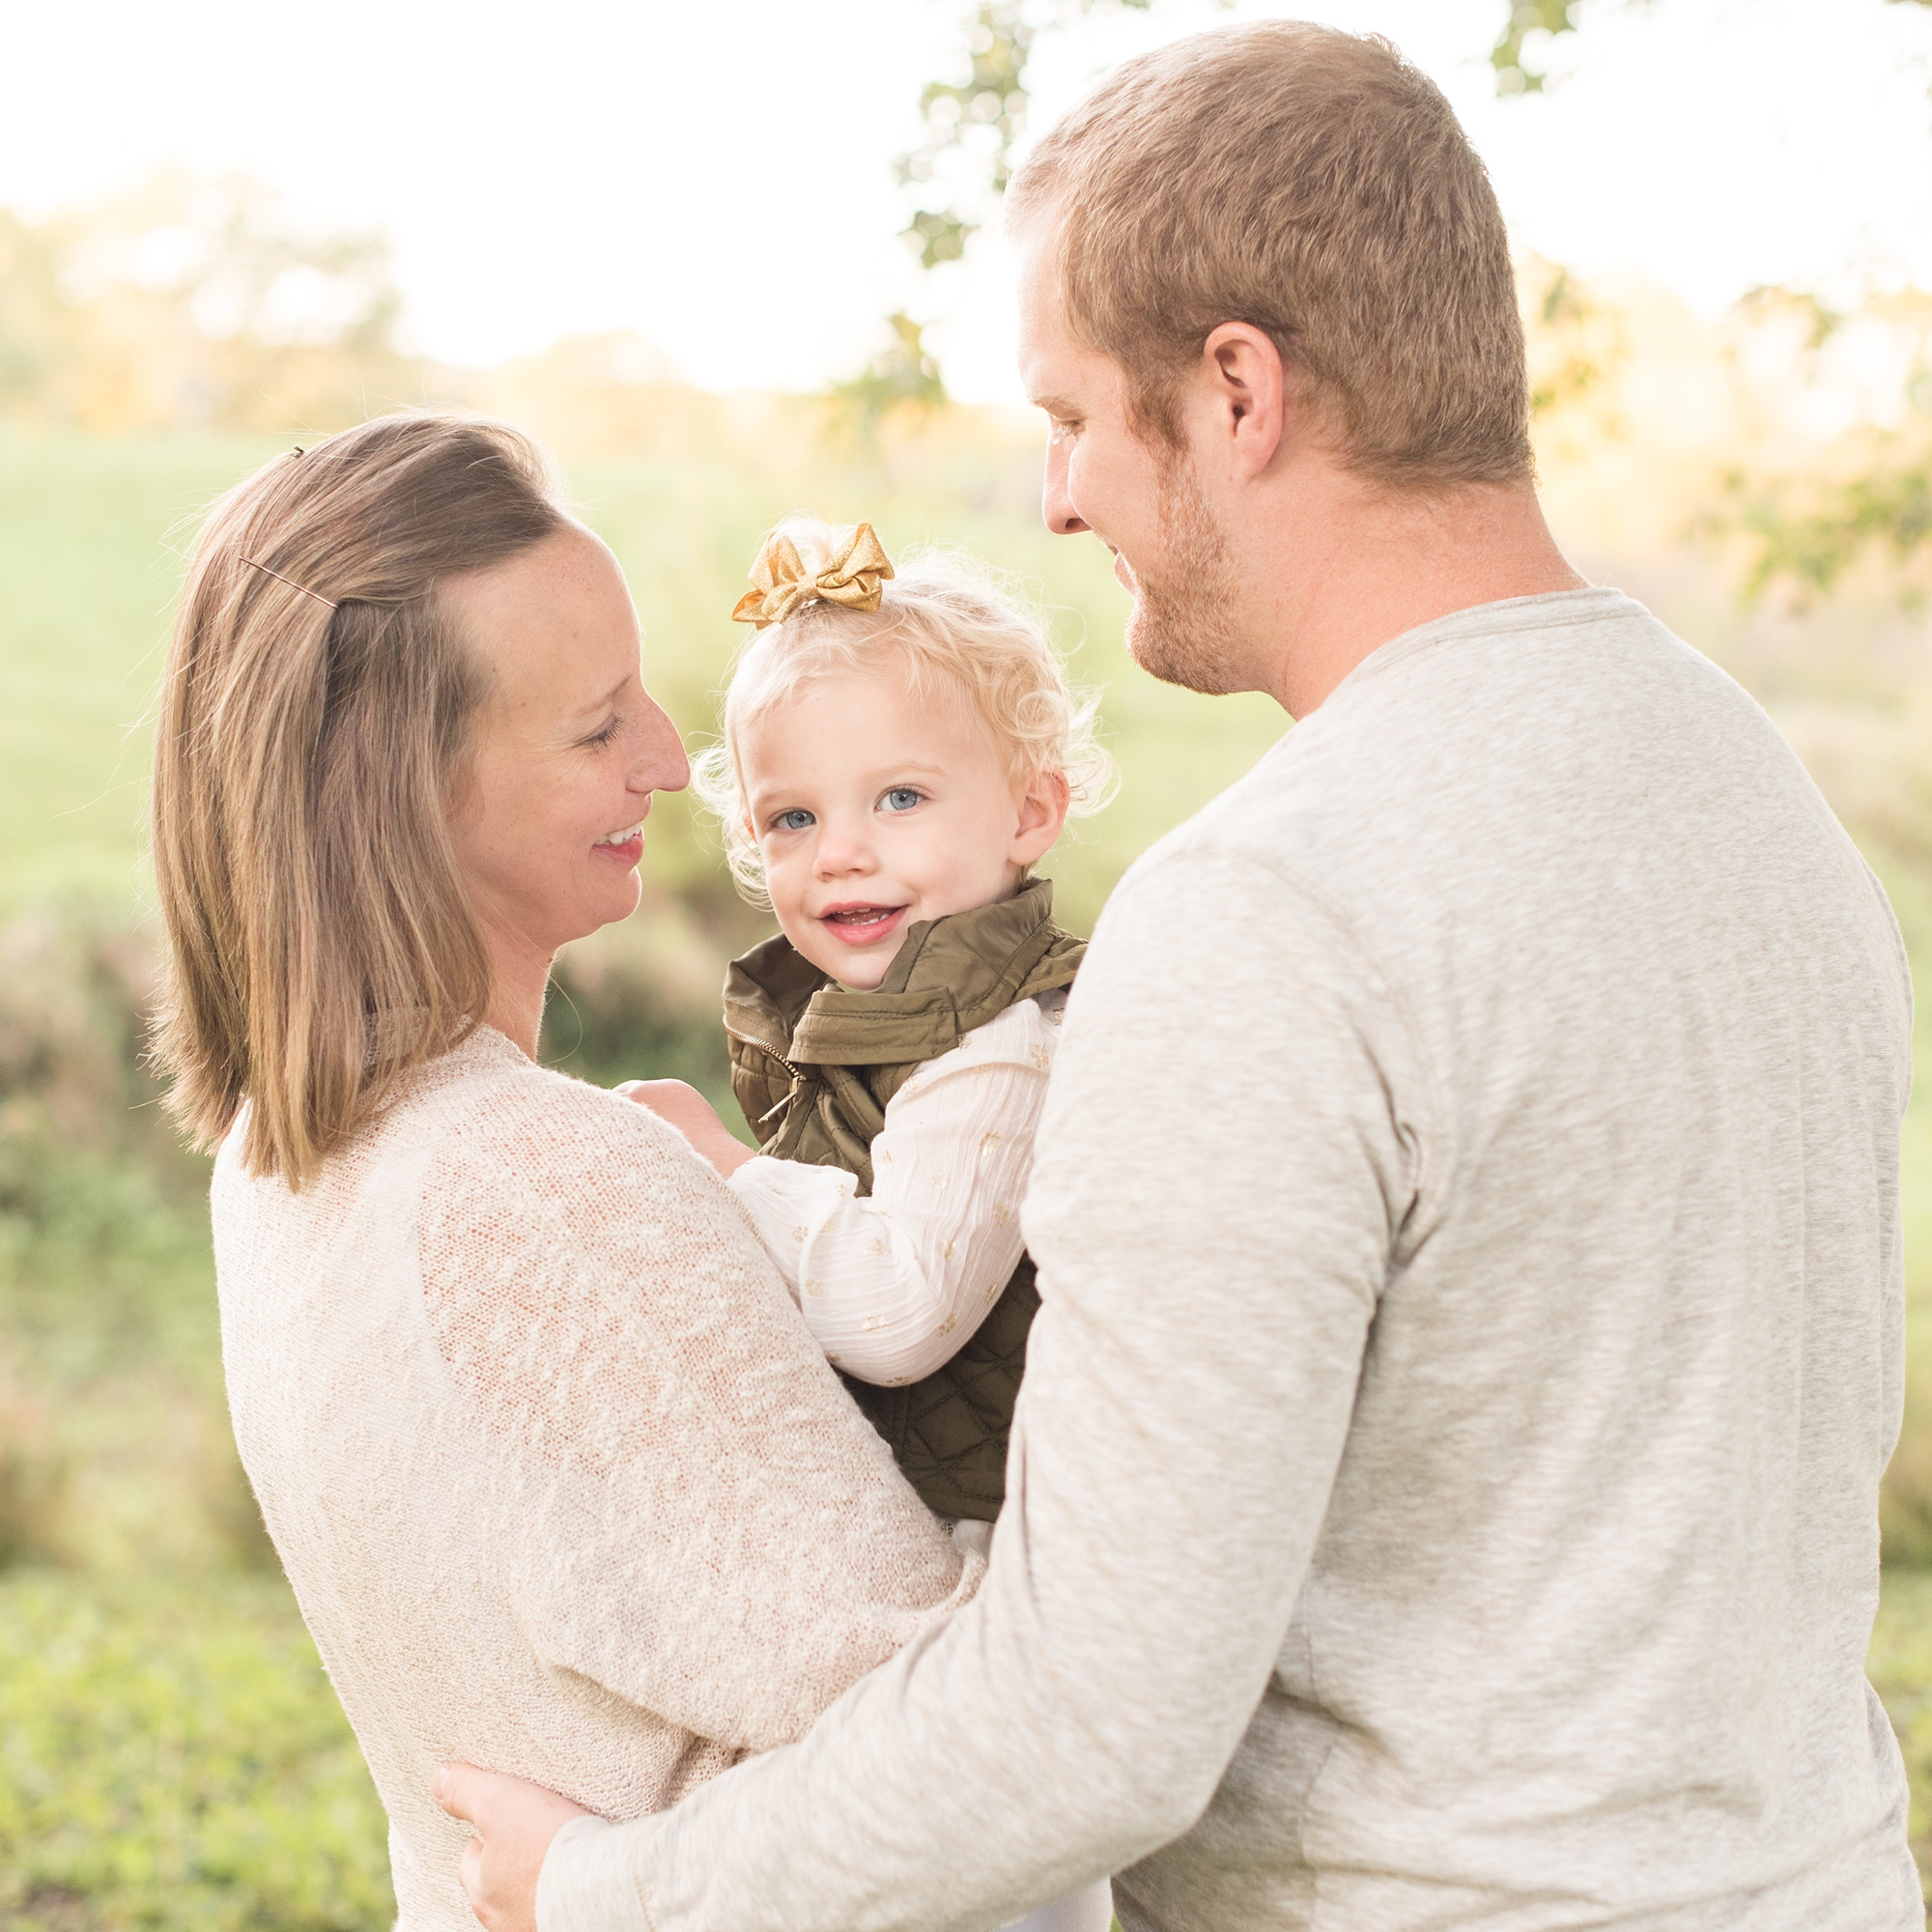 Lafayette, Indiana Photographer | Lafayette, Indiana Family Photographer | Indiana Family Photographer | Victoria Rayburn Photography